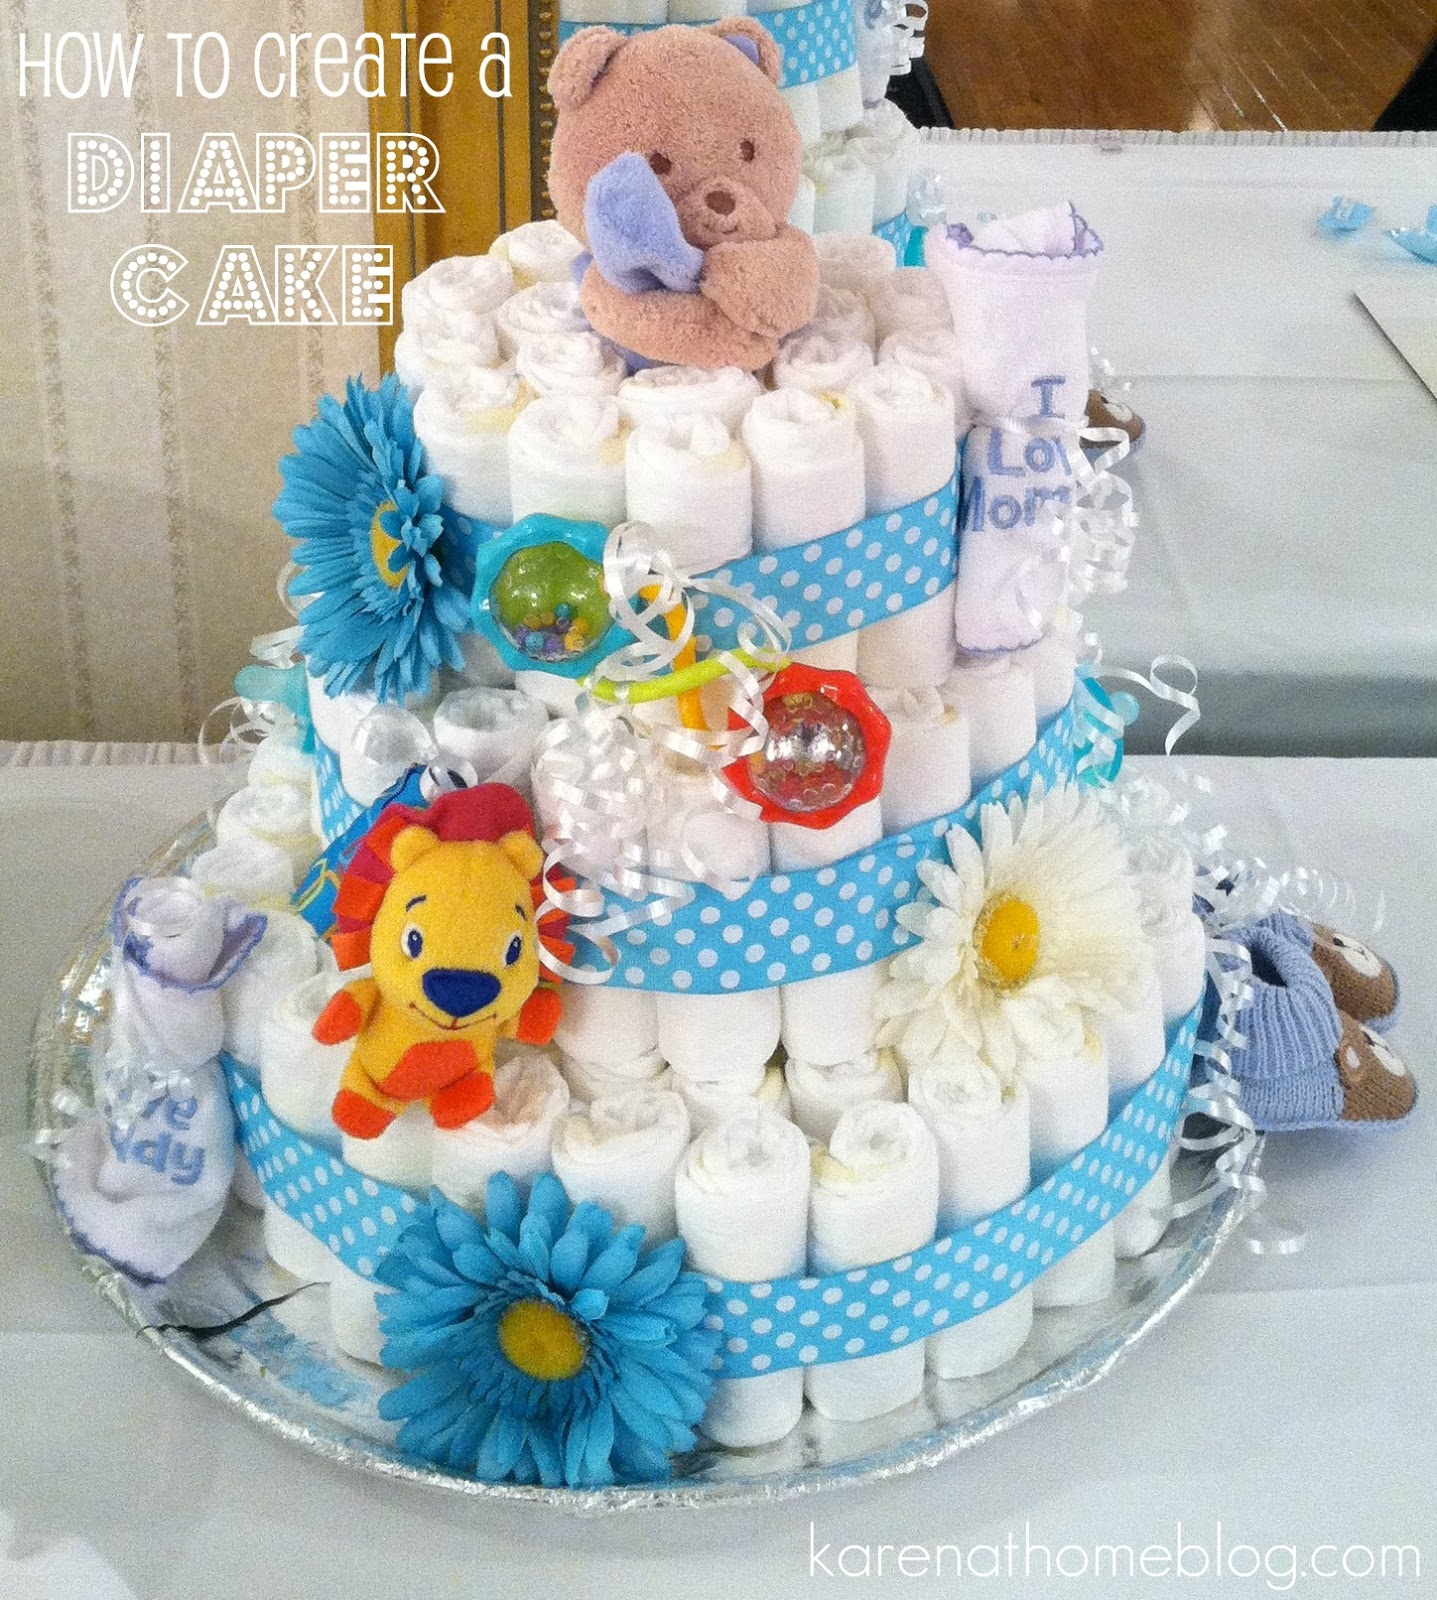 How To Make Baby Shower Diaper Cake: Tips For The 40ish: How To Make A Diaper Cake